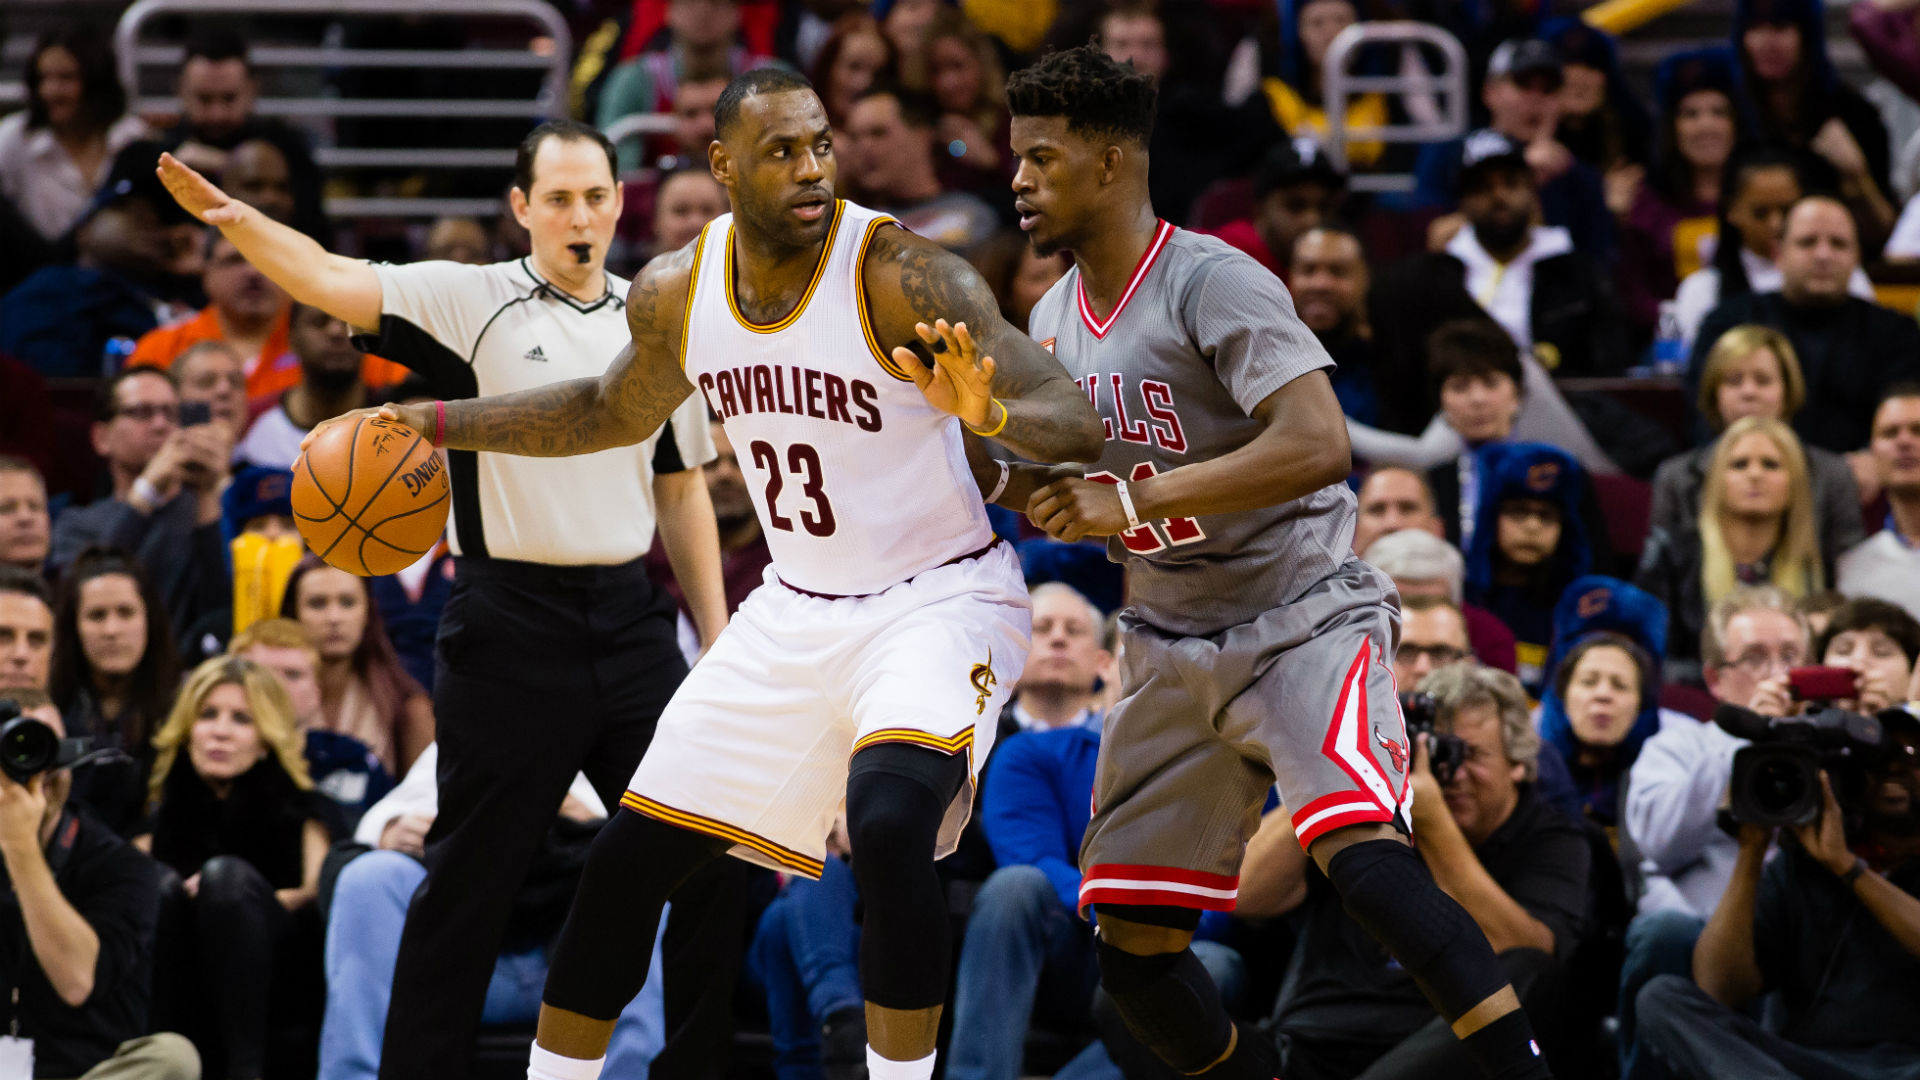 Cleveland Cavaliers players warn Jimmy Butler to avoid organization